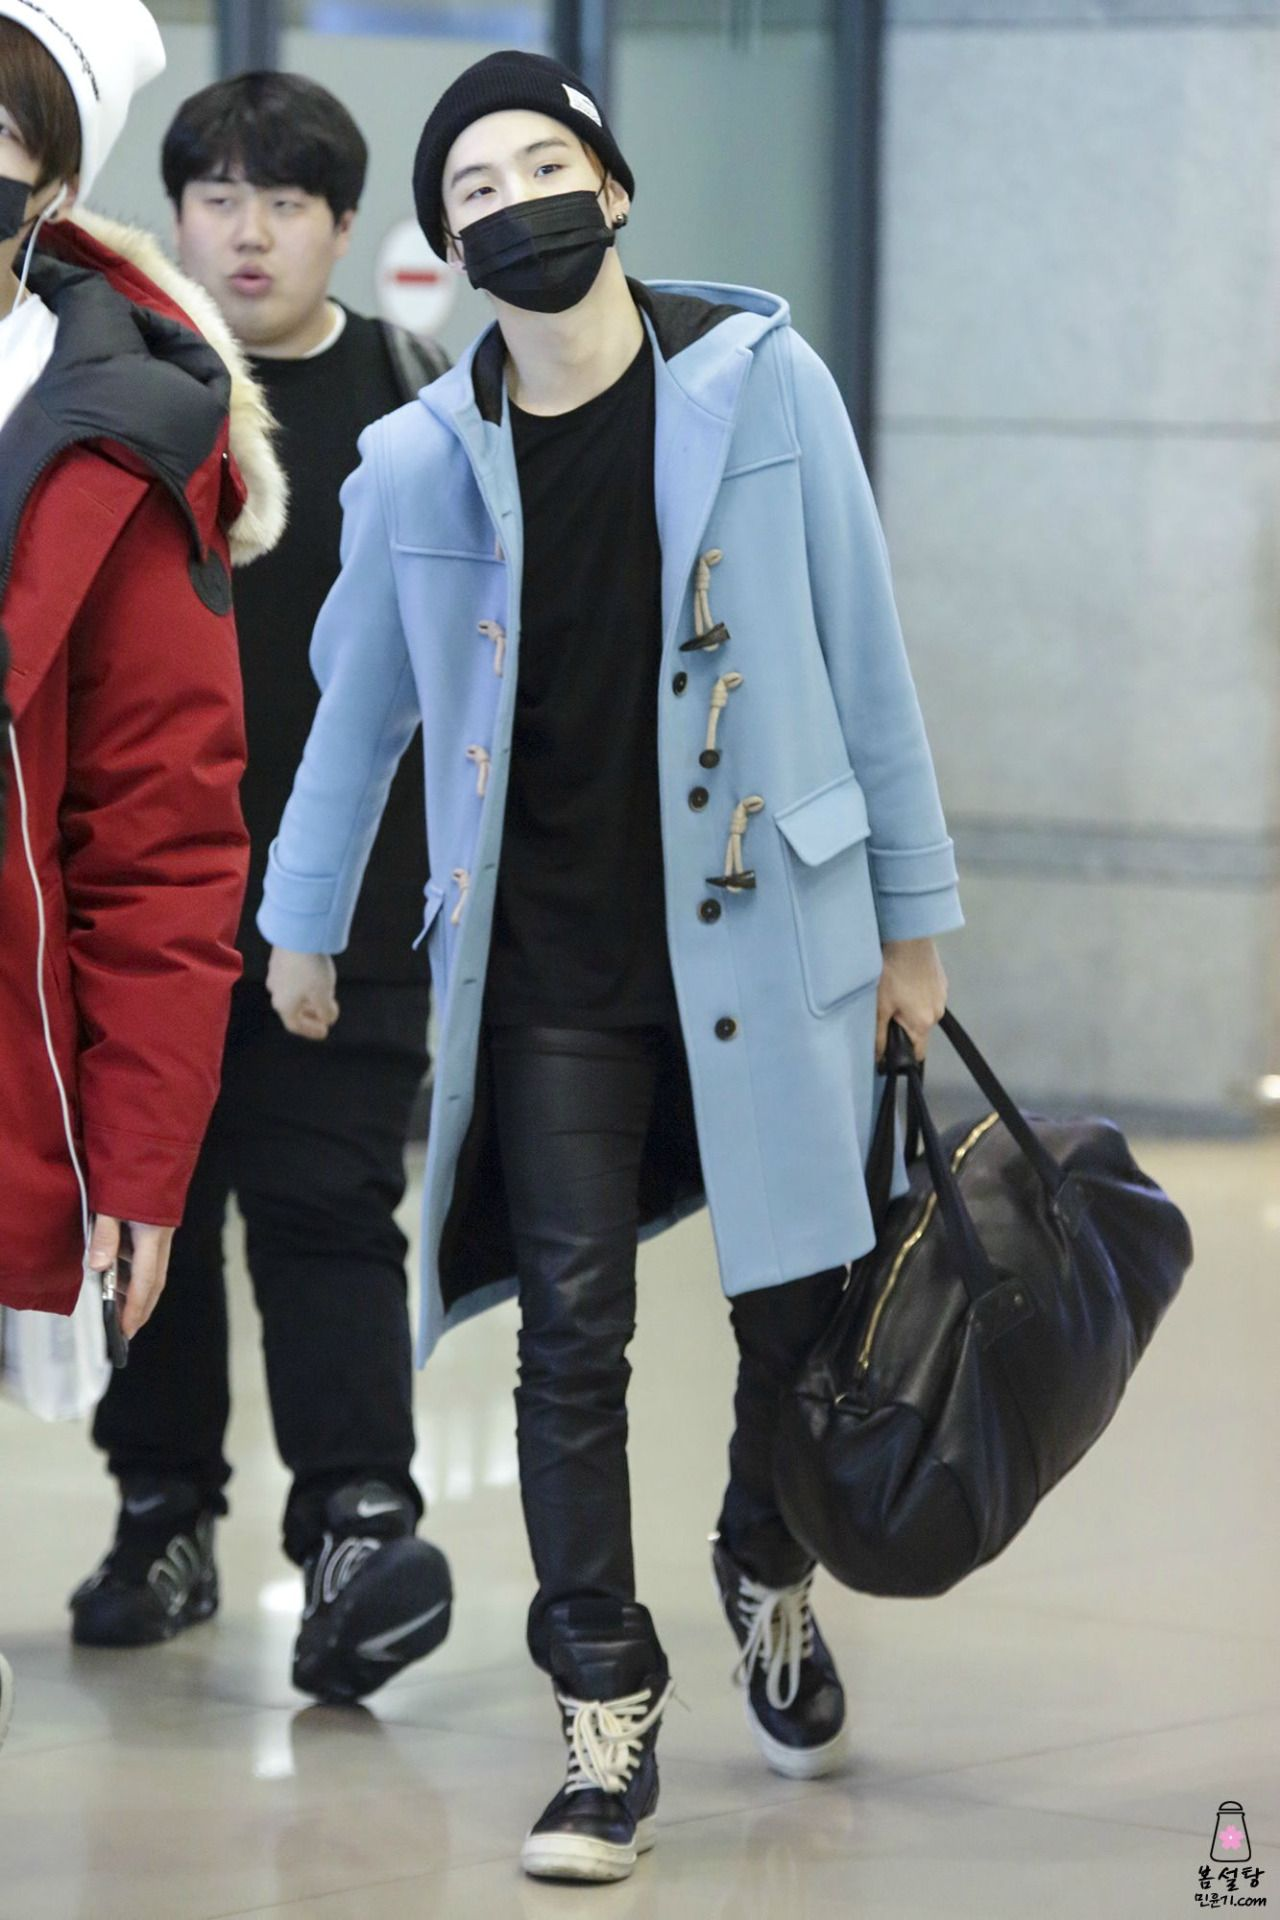 150220- BTS Suga (Min Yoongi) @ Incheon Airport #bts #bangtan #bangtanboys #fashion #style #korean